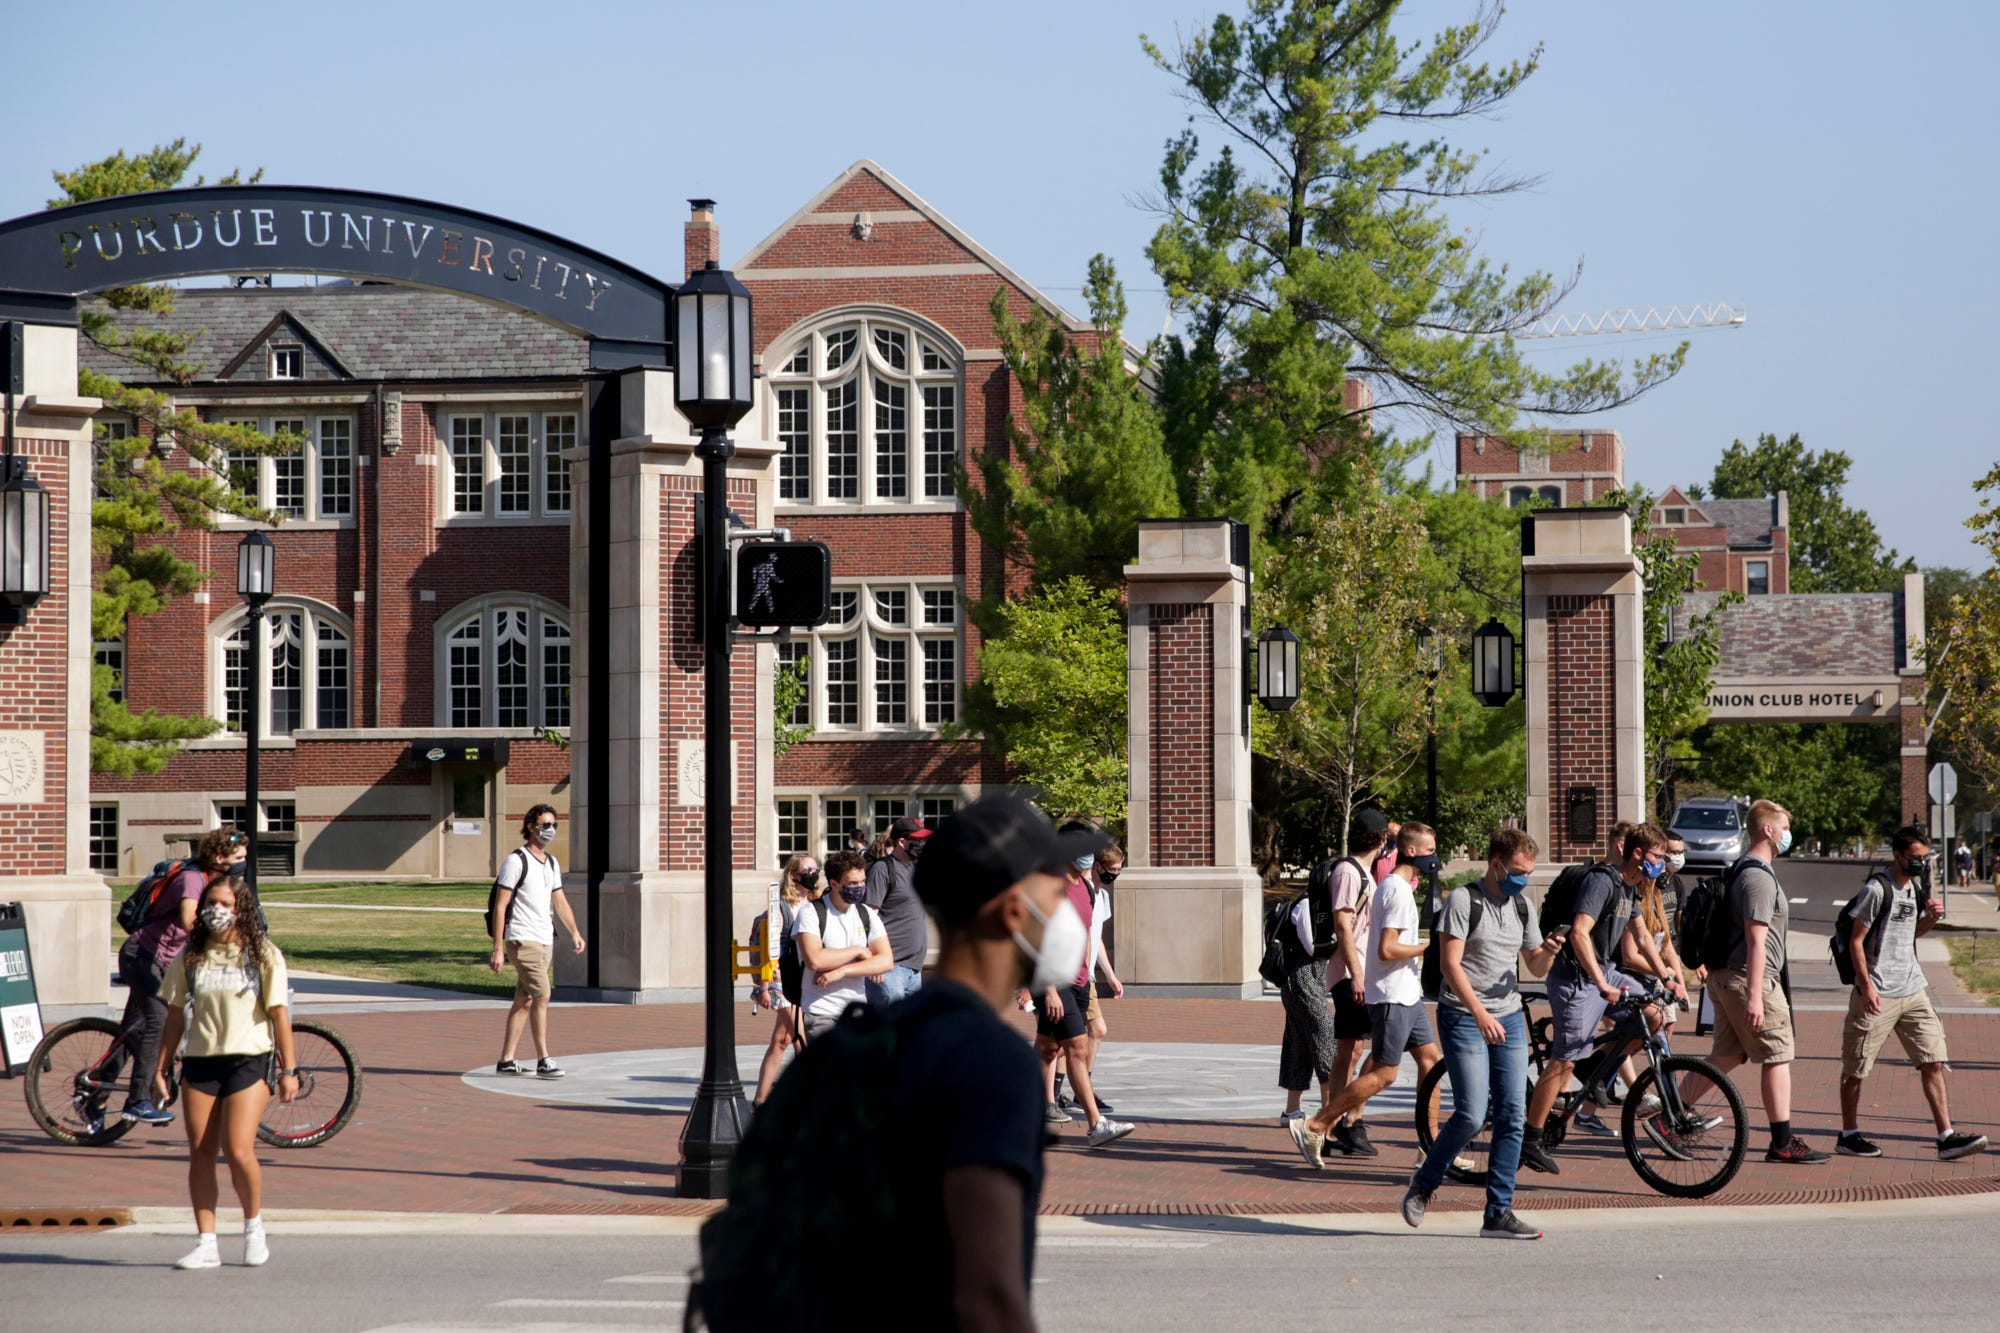 """Purdue University says it has """"ample space"""" for quarantine if students test positive for the coronavirus."""